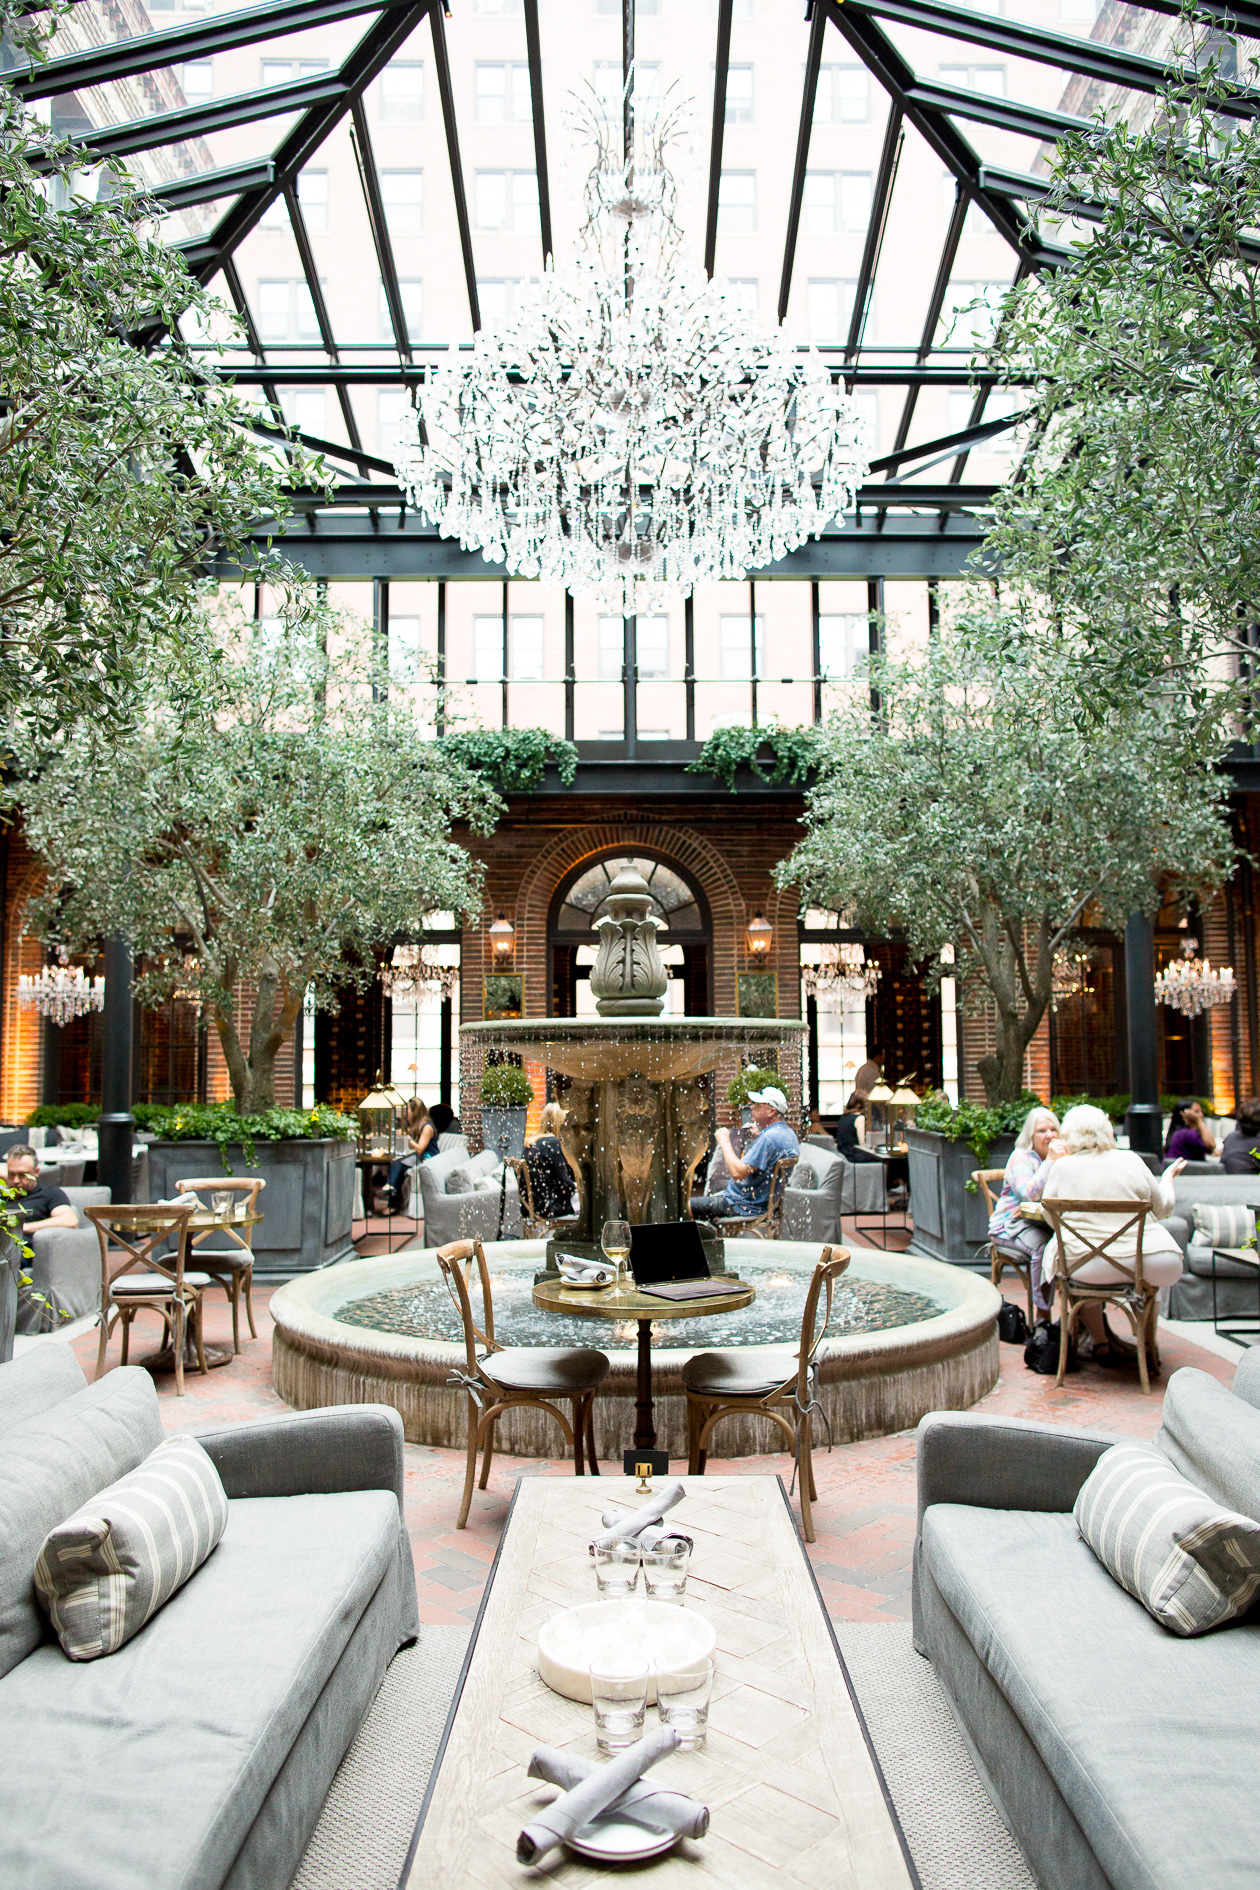 restoration-hardware-gold-coast-chicago-dearborn-29